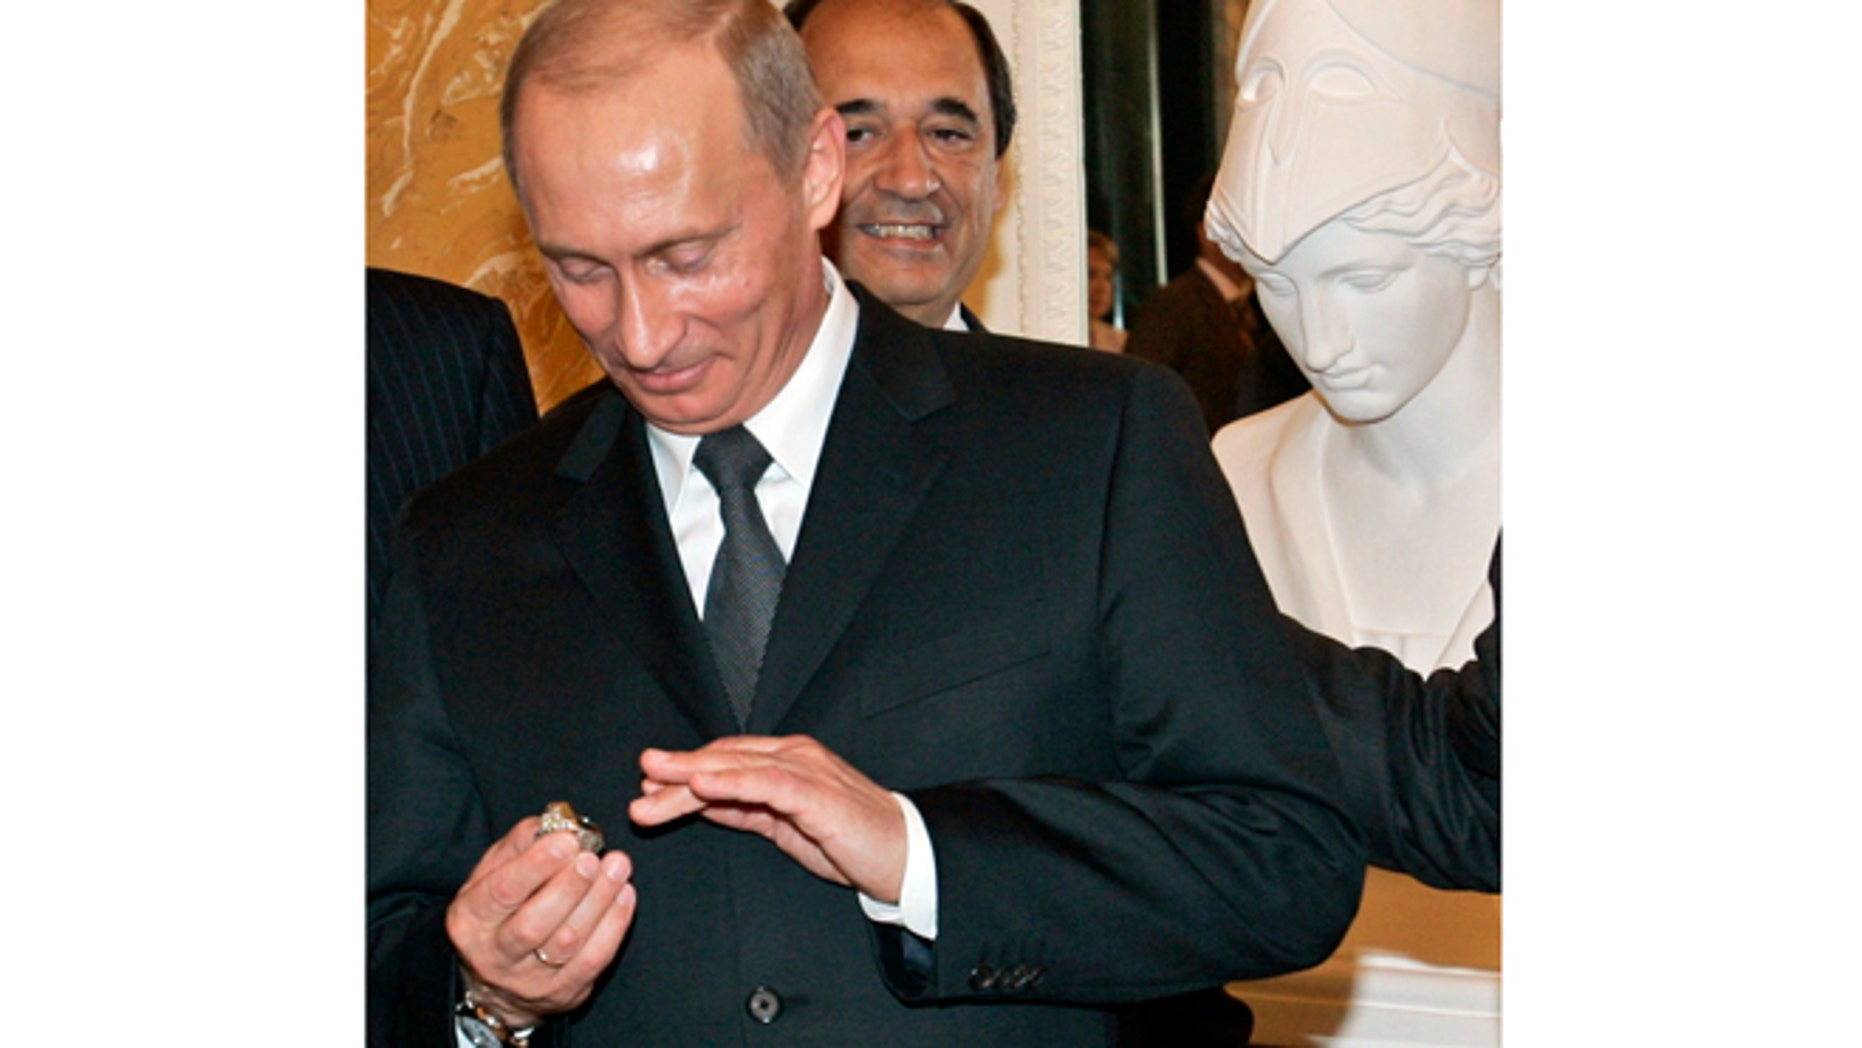 FILE - In this June 25, 2005, file photo, Russian President Vladimir Putin holds a diamond-encrusted 2005 Super Bowl ring belonging to New England Patriots NFL football team owner Robert Kraft during a meeting of American business executives at the 18th century Konstantin Palace outside St. Petersburg, Russia. When Putin arrived in London on Sunday, June 16, 2013, his spokesman was asked about a New York Post story quoting Kraft saying Putin pocketed his Super Bowl ring in 2005. Putin said hes happy to buy New England Patriots owner Robert Kraft another ring, but its absurd to suggest he stole the Super Bowl one. (AP Photo/Alexander Zemlianichenko, File)